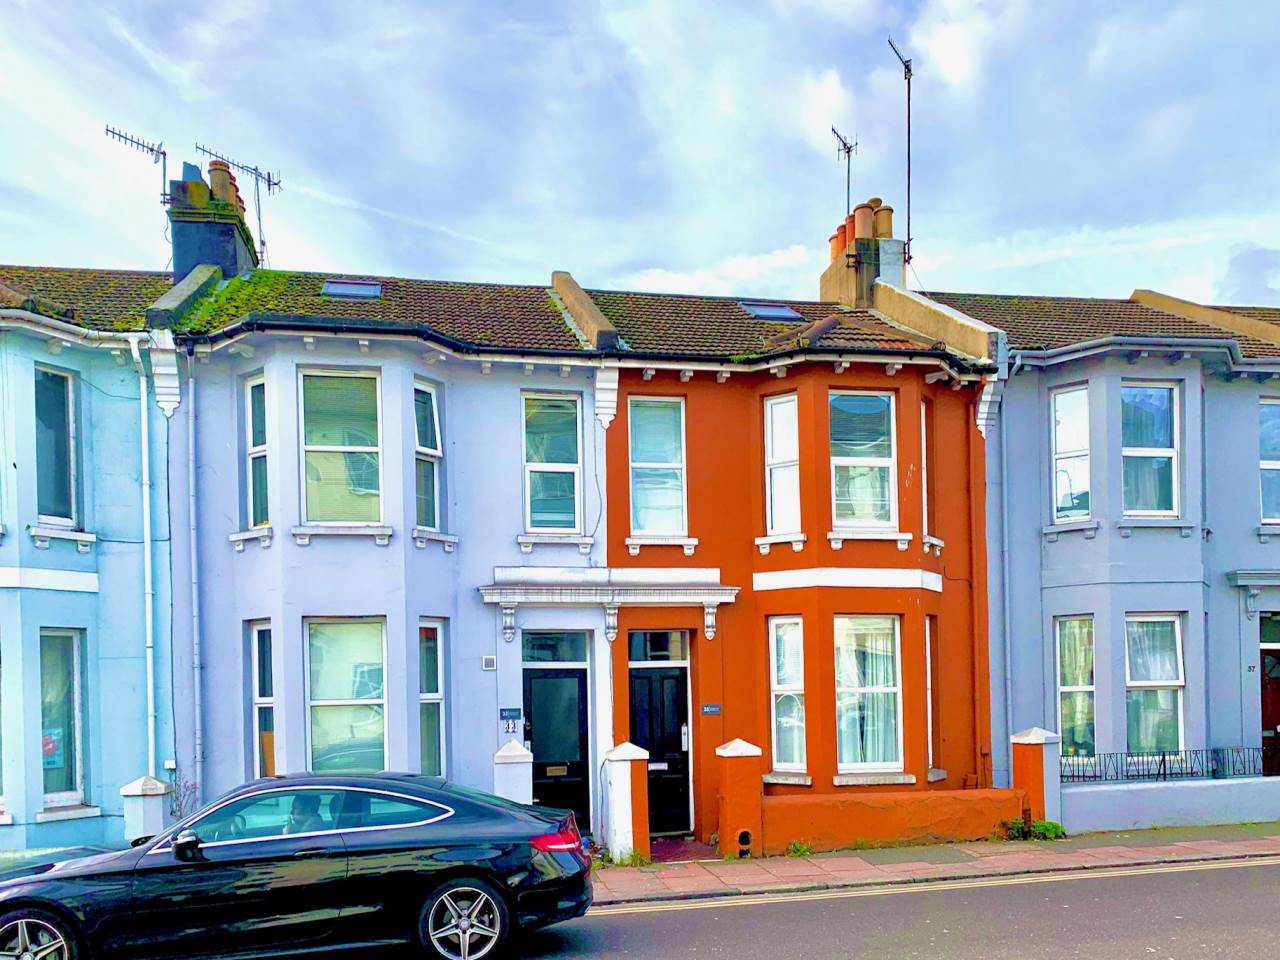 6 bed house to rent - Property Image 1